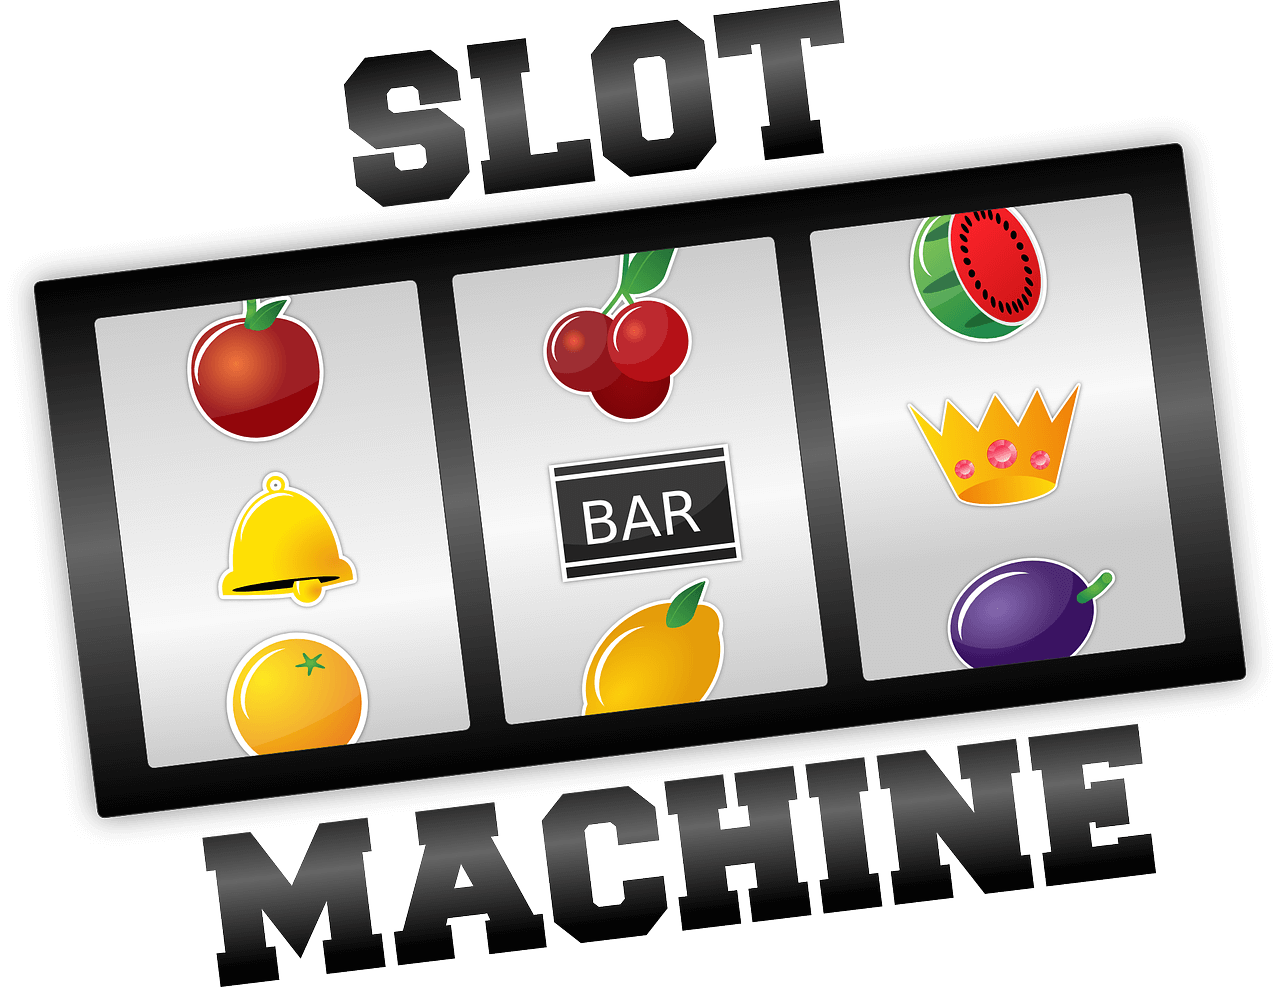 slot-machine画像